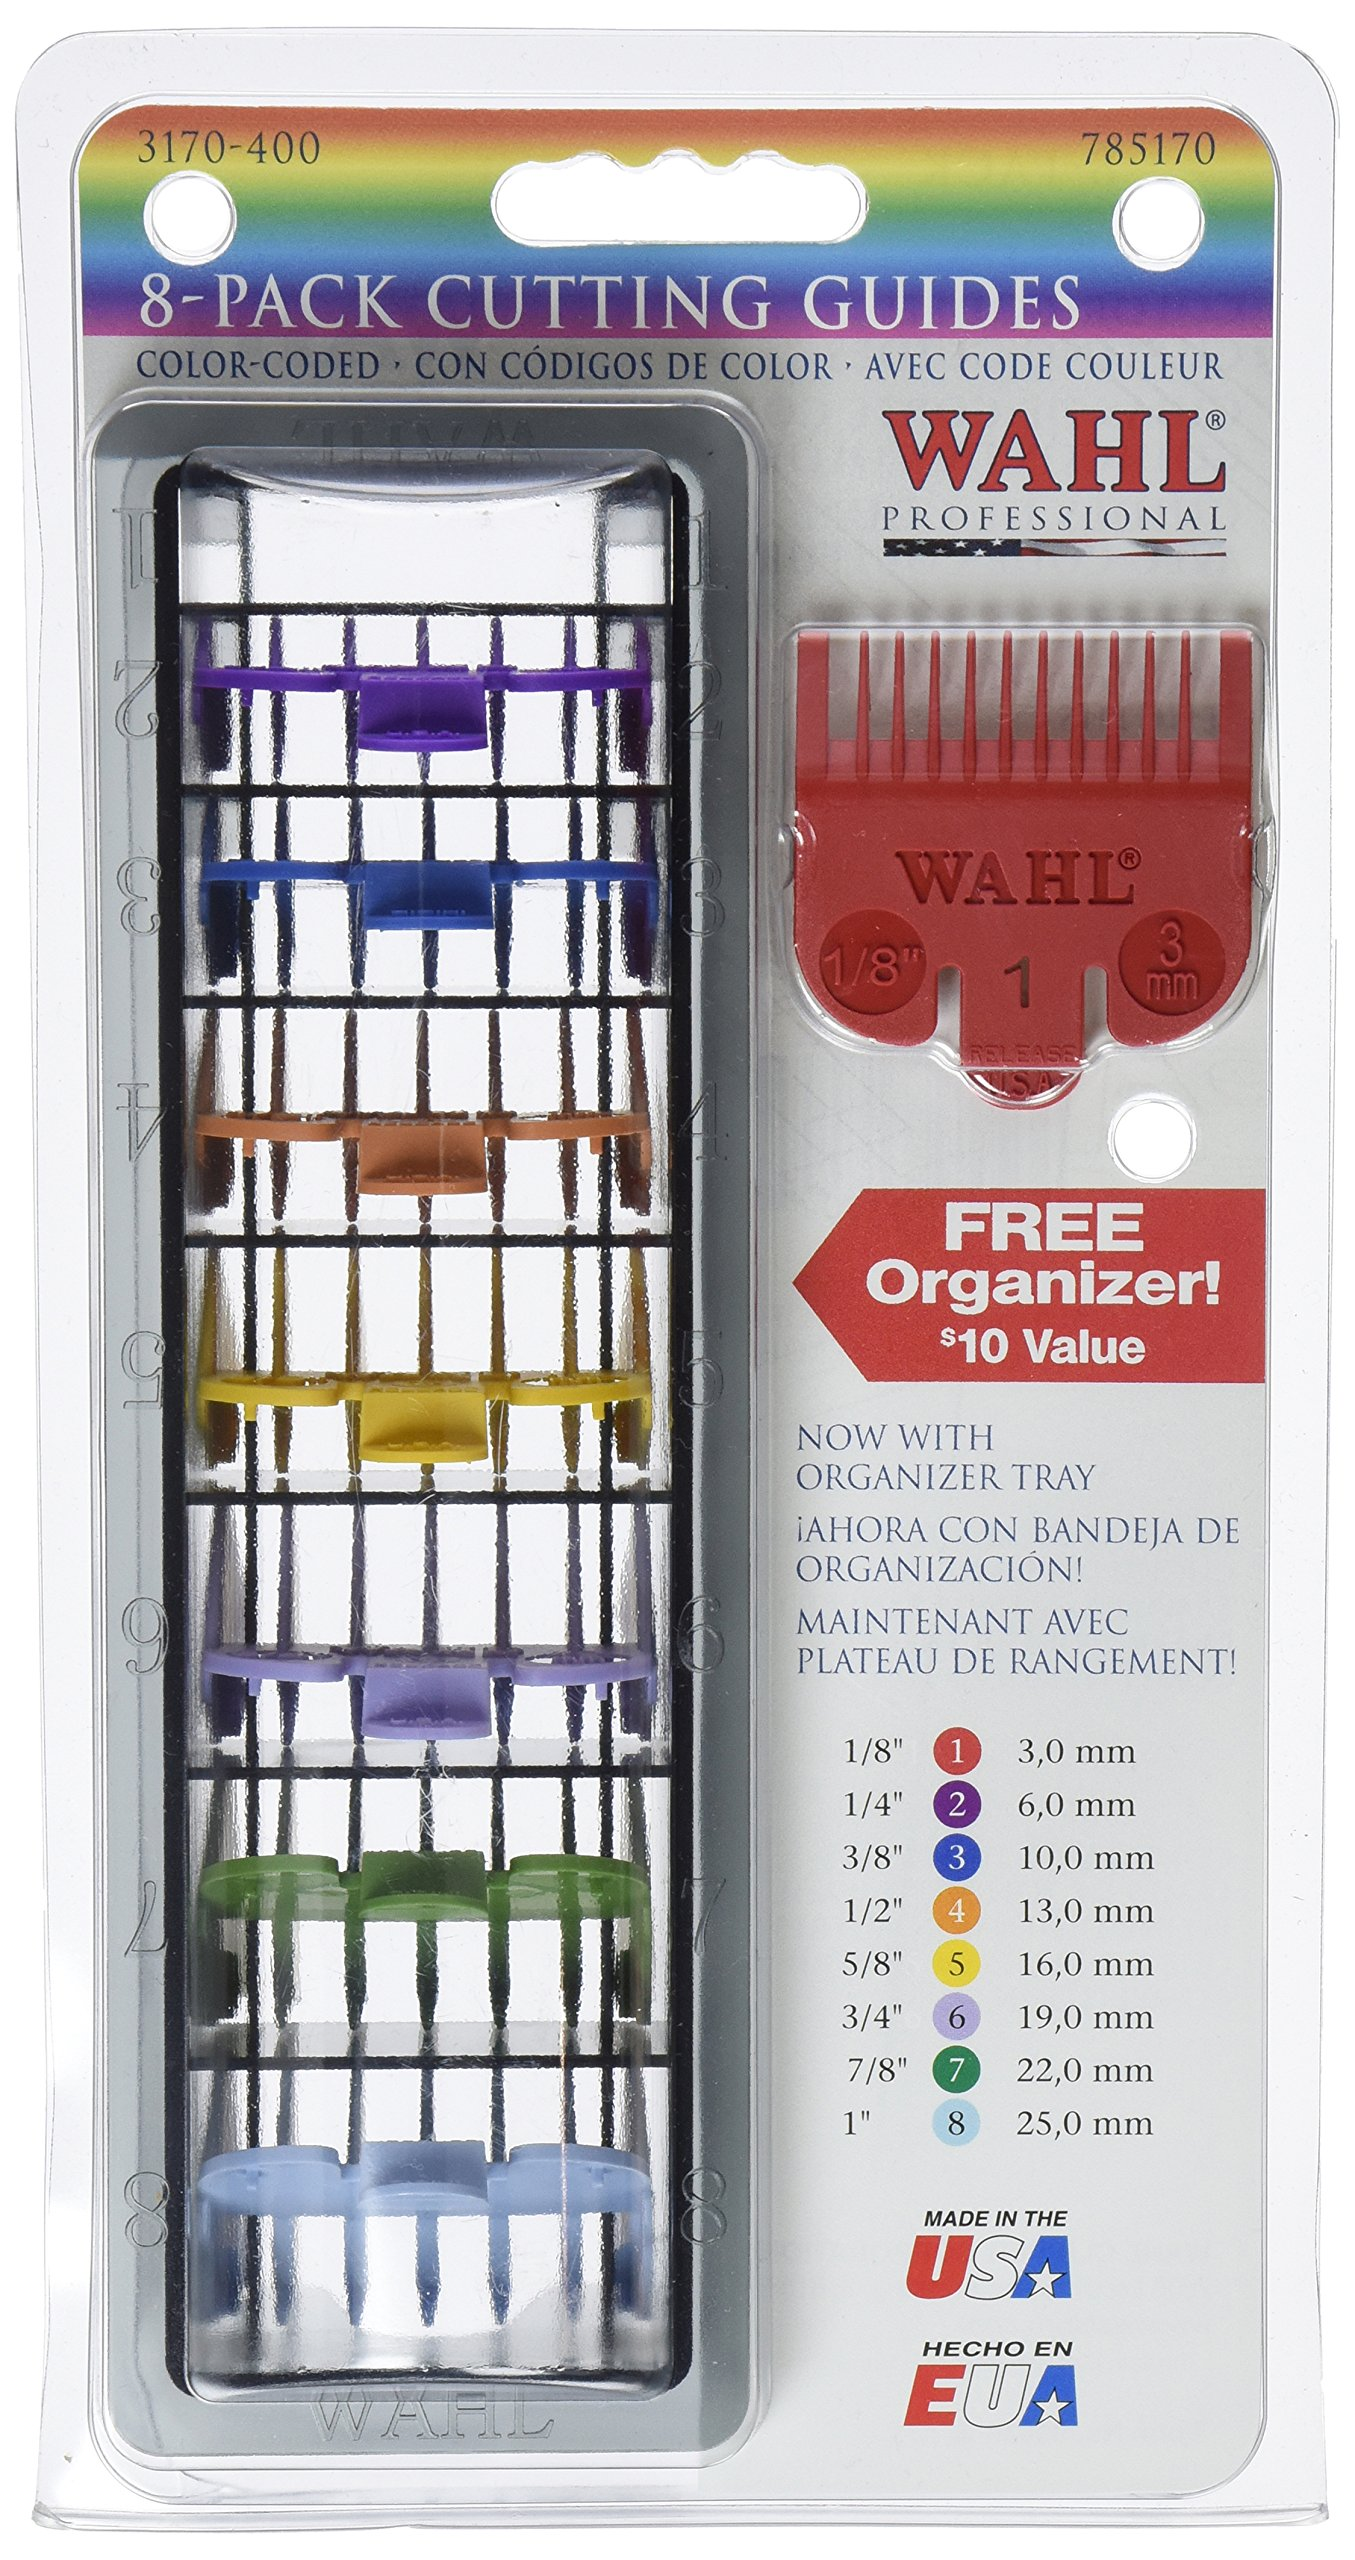 """Wahl Professional 8 Color Coded Cutting Guides with Organizer #3170-400 – Great for Professional Stylists and Barbers – Cutting Lengths from 1/8"""" to 1 by Wahl Professional (Image #3)"""